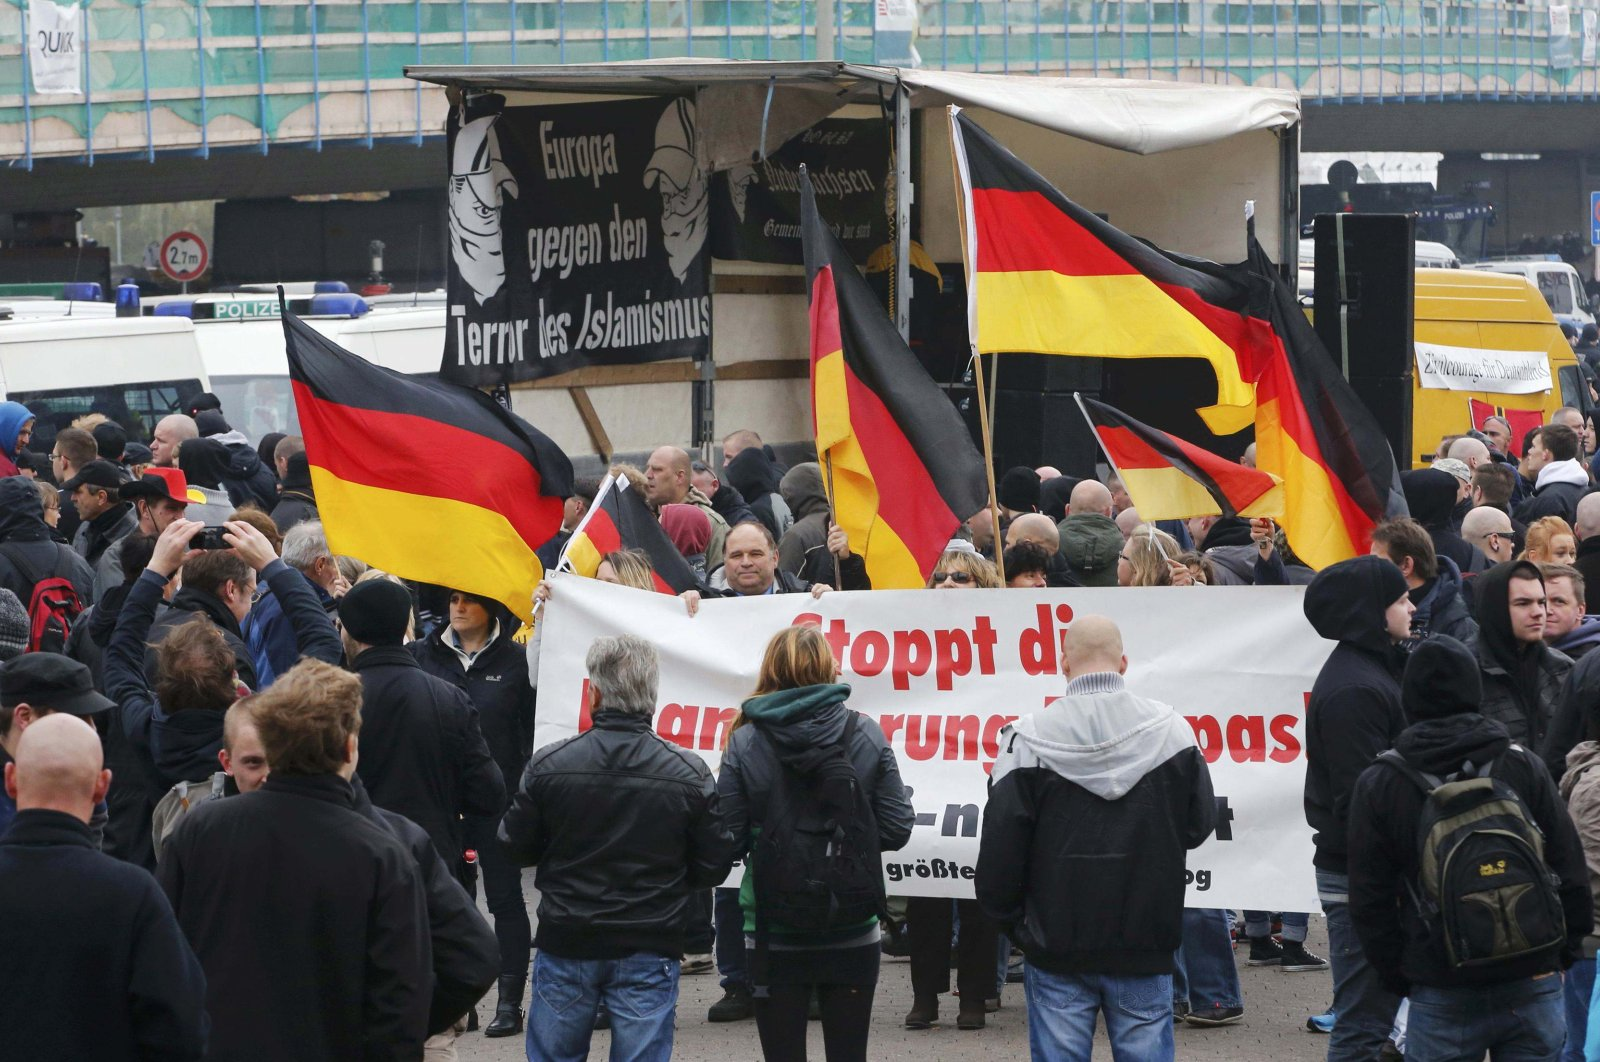 A demonstration by neo-Nazis and self-styled soccer hooligans in Hanover, Germany, Nov. 15, 2014. (Reuters Photo)